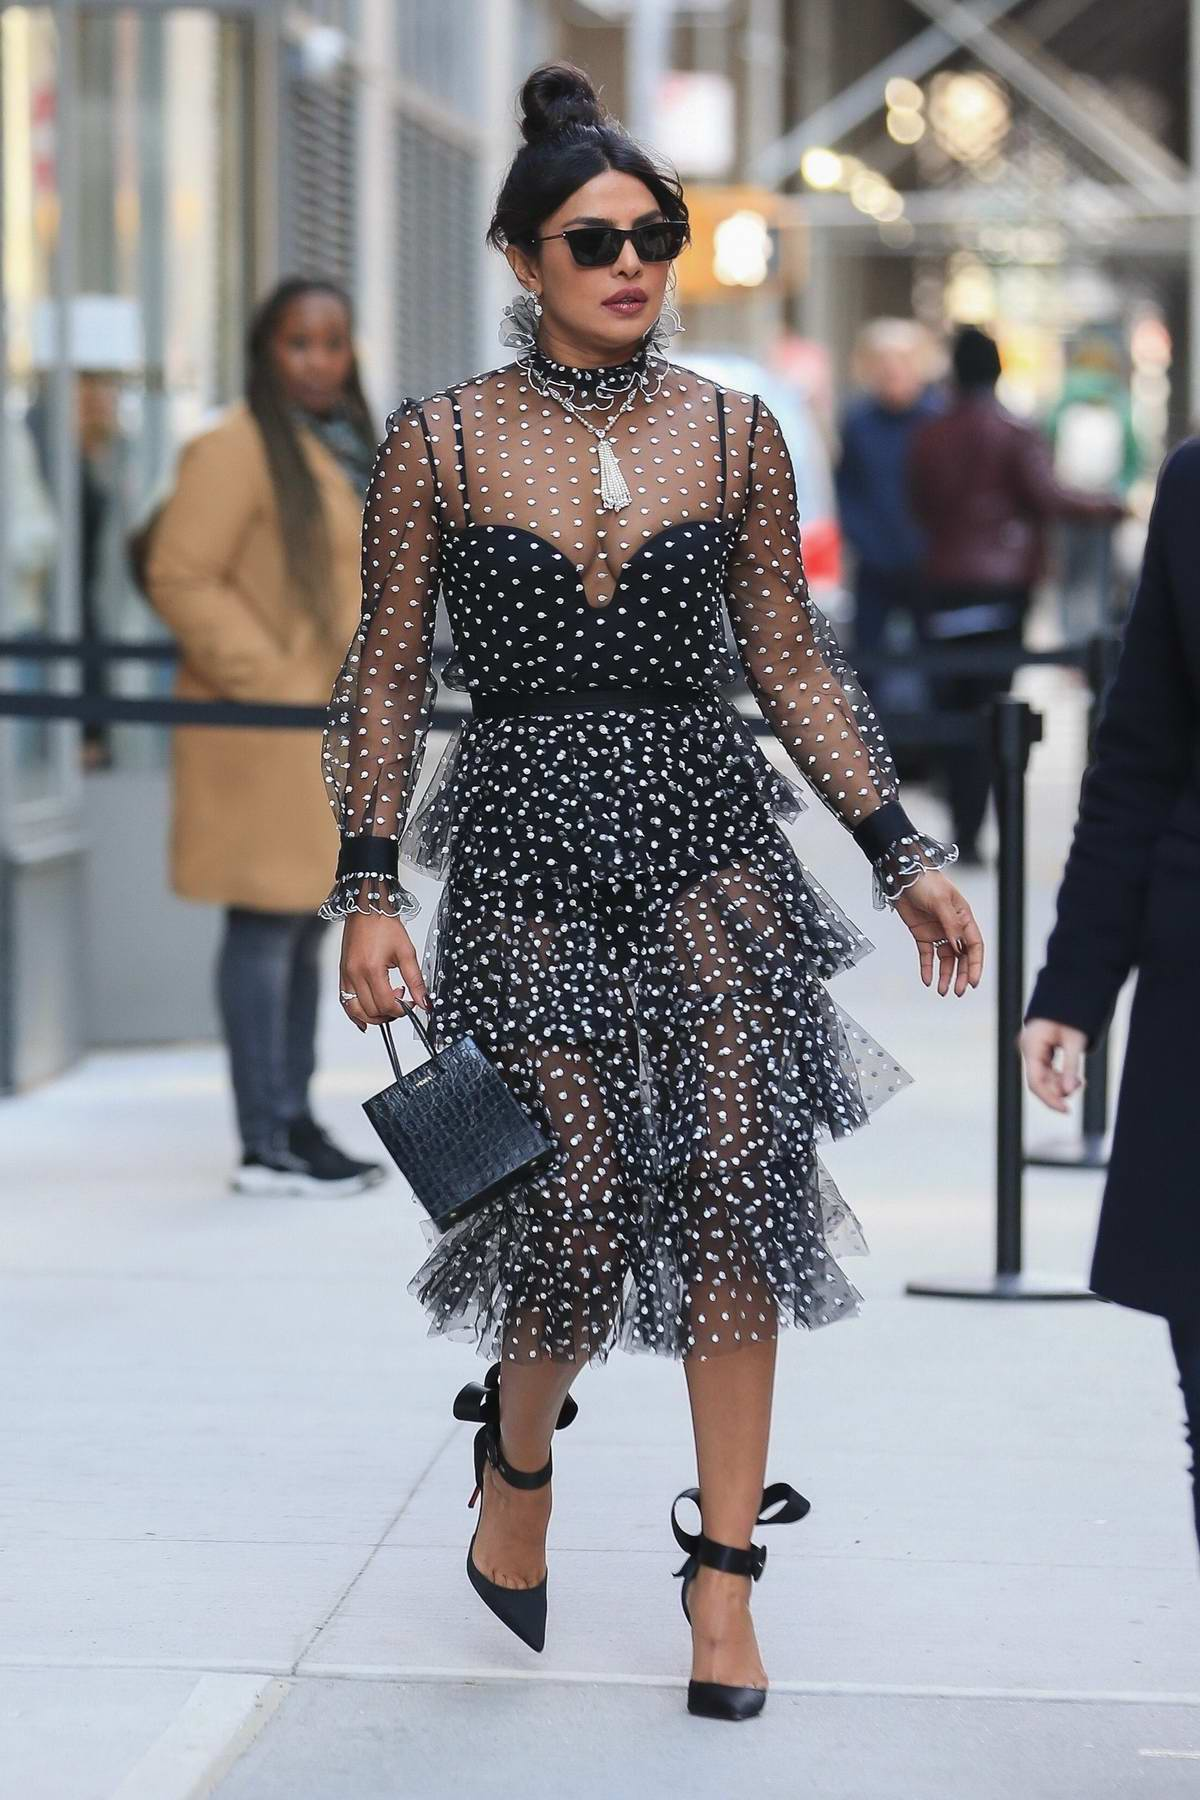 Priyanka Chopra steps out in a sheer polka dot dress after taping 'Watch What Happens Live' in New York City